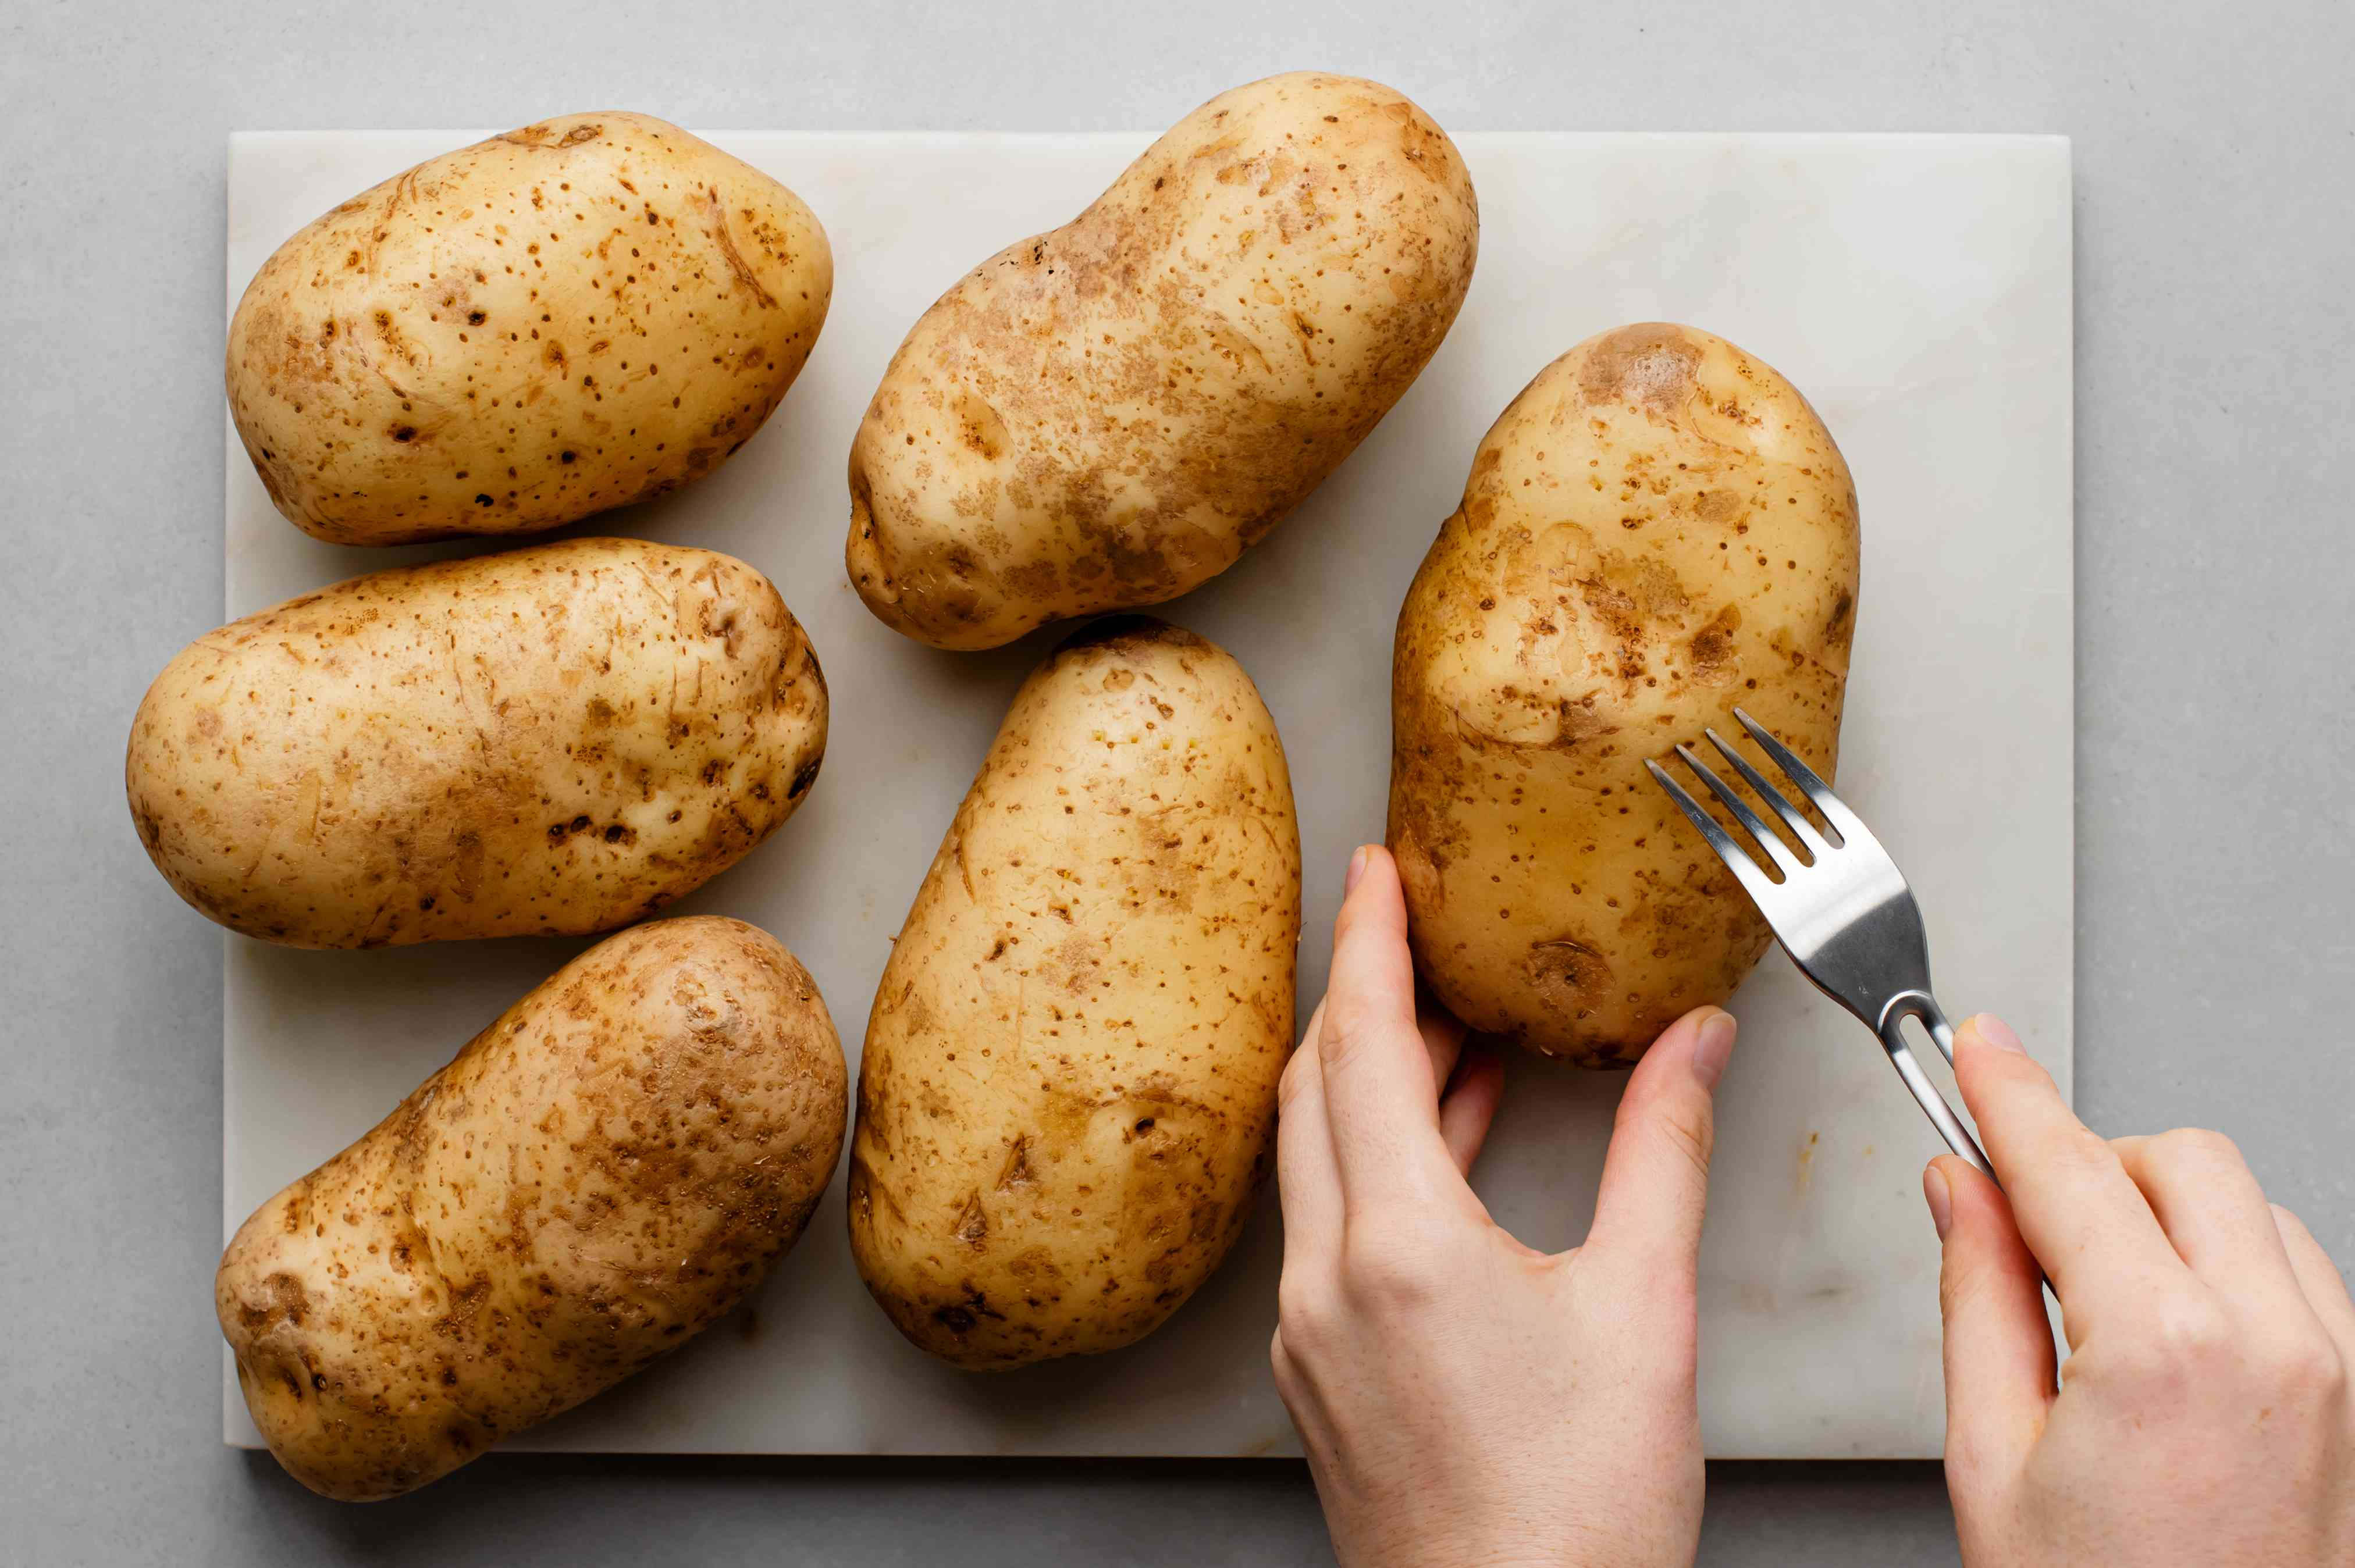 Prick the potatoes with a fork